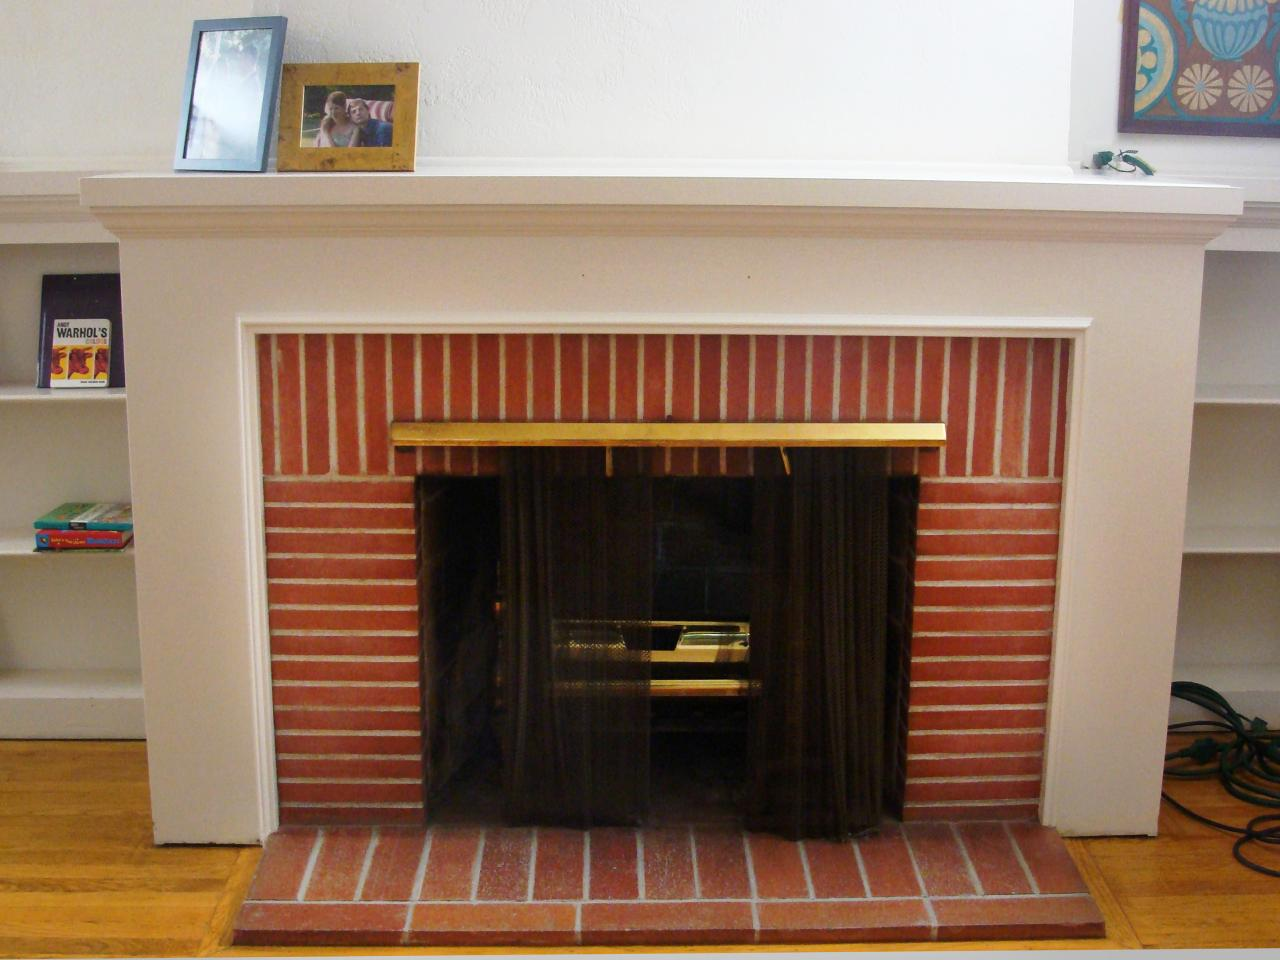 Discussing brick fireplace remodel options fireplace for Fireplace material options